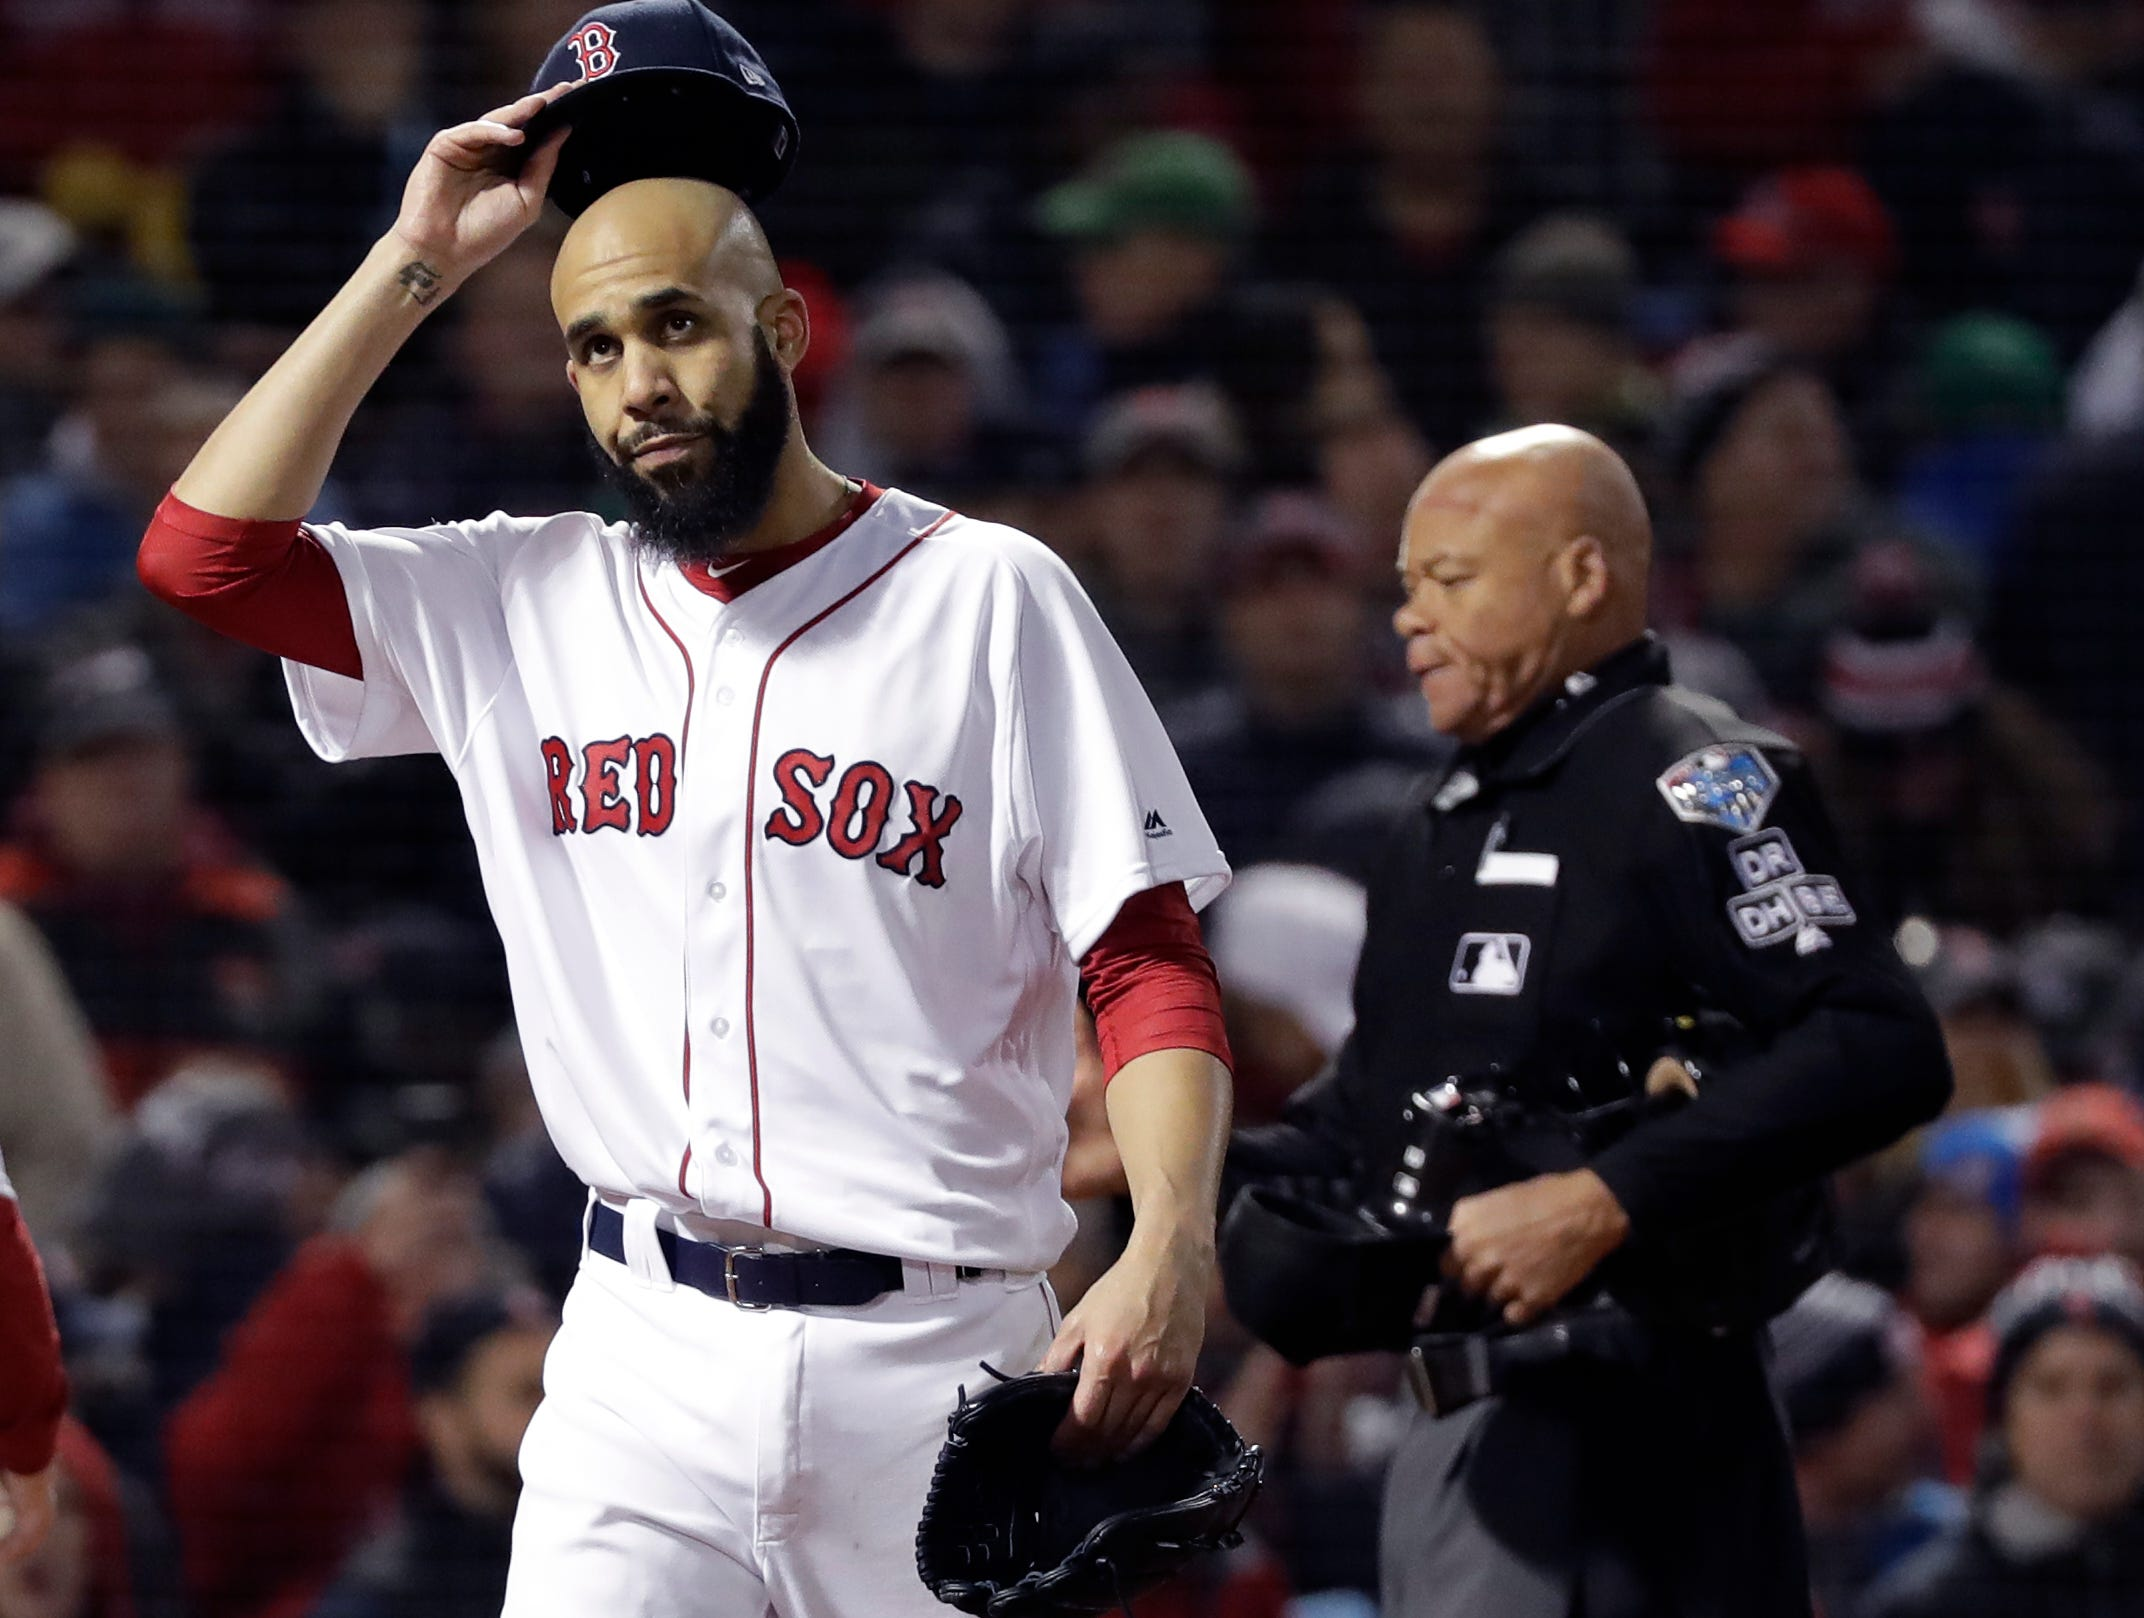 Boston Red Sox pitcher David Price walks off the infield after allowing two runs during the fourth inning of Game 2 of the World Series against the Los Angeles Dodgers Wednesday, Oct. 24, 2018, in Boston.